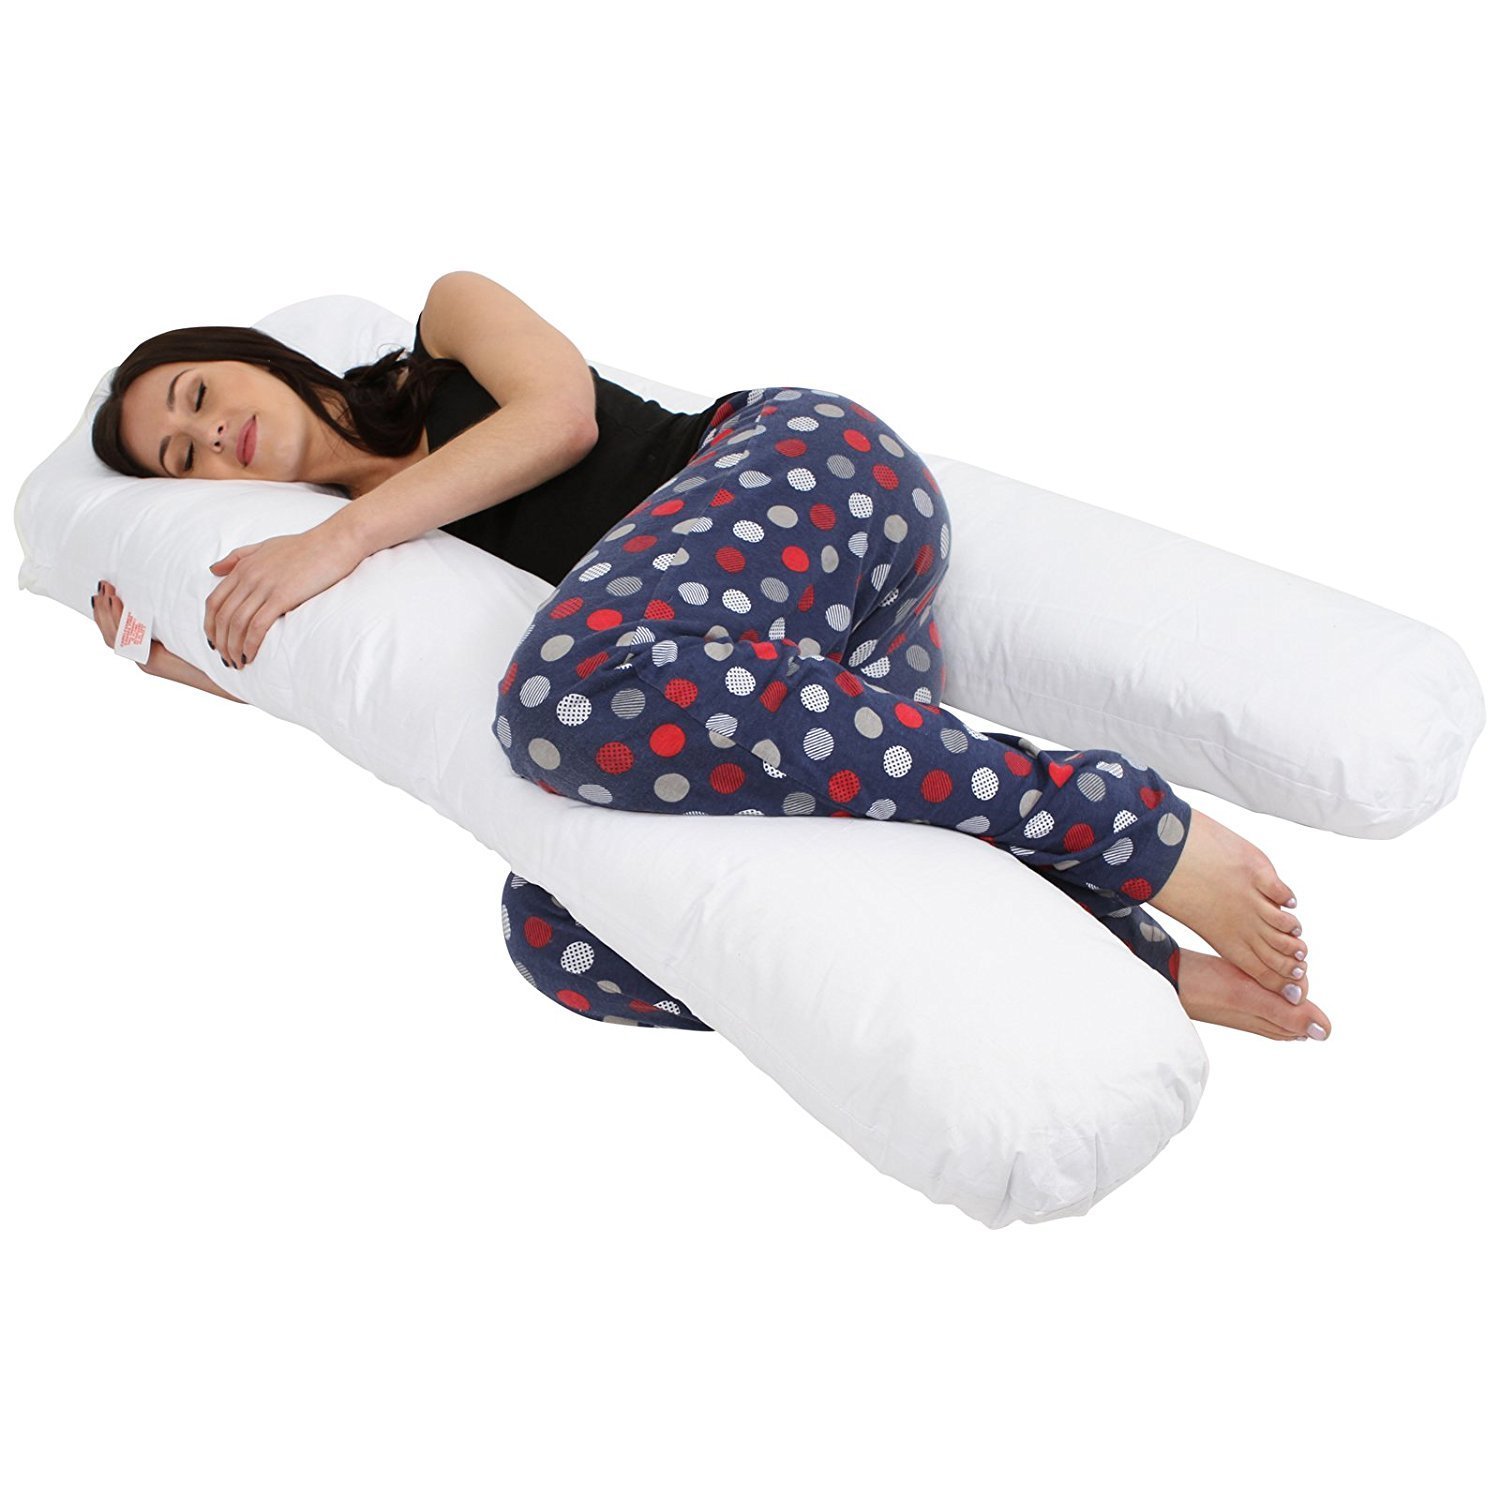 Silver SleepyNights U Shape Pregnancy Maternity Support Pillow with Removable Velvet Cover